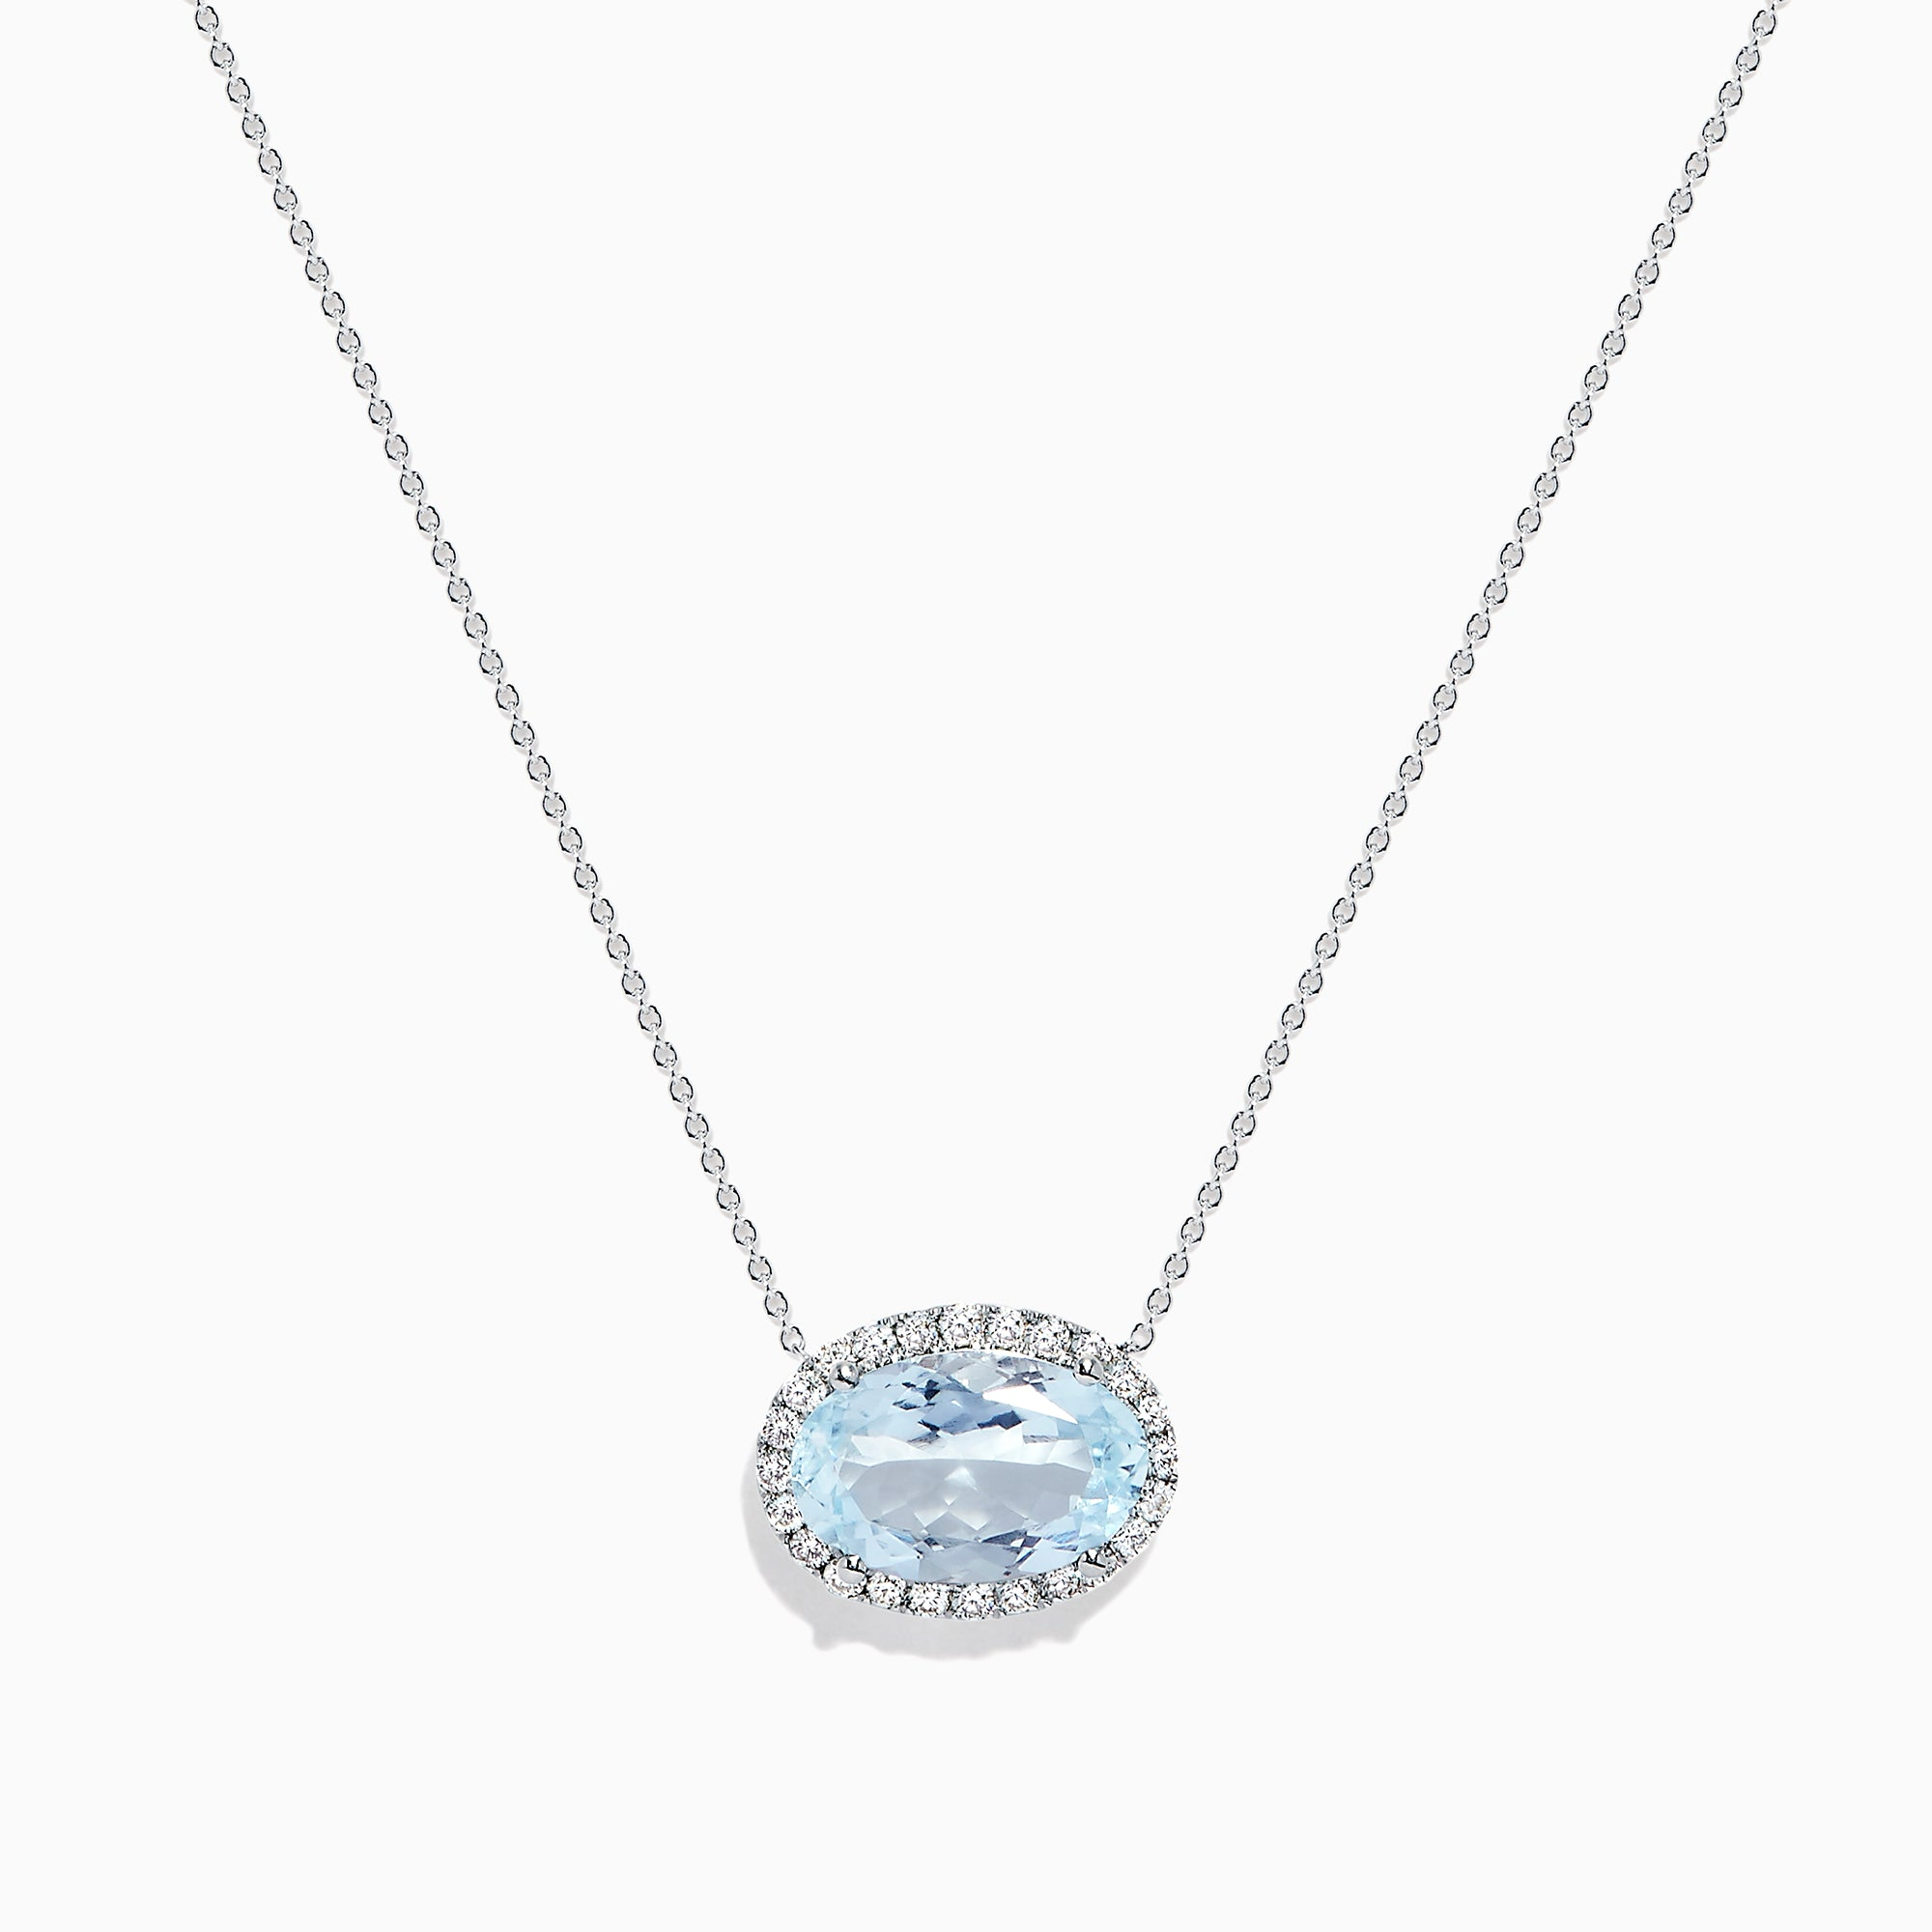 Effy Aquarius 14K White Gold Aquamarine and Diamond Necklace, 3.39 TCW